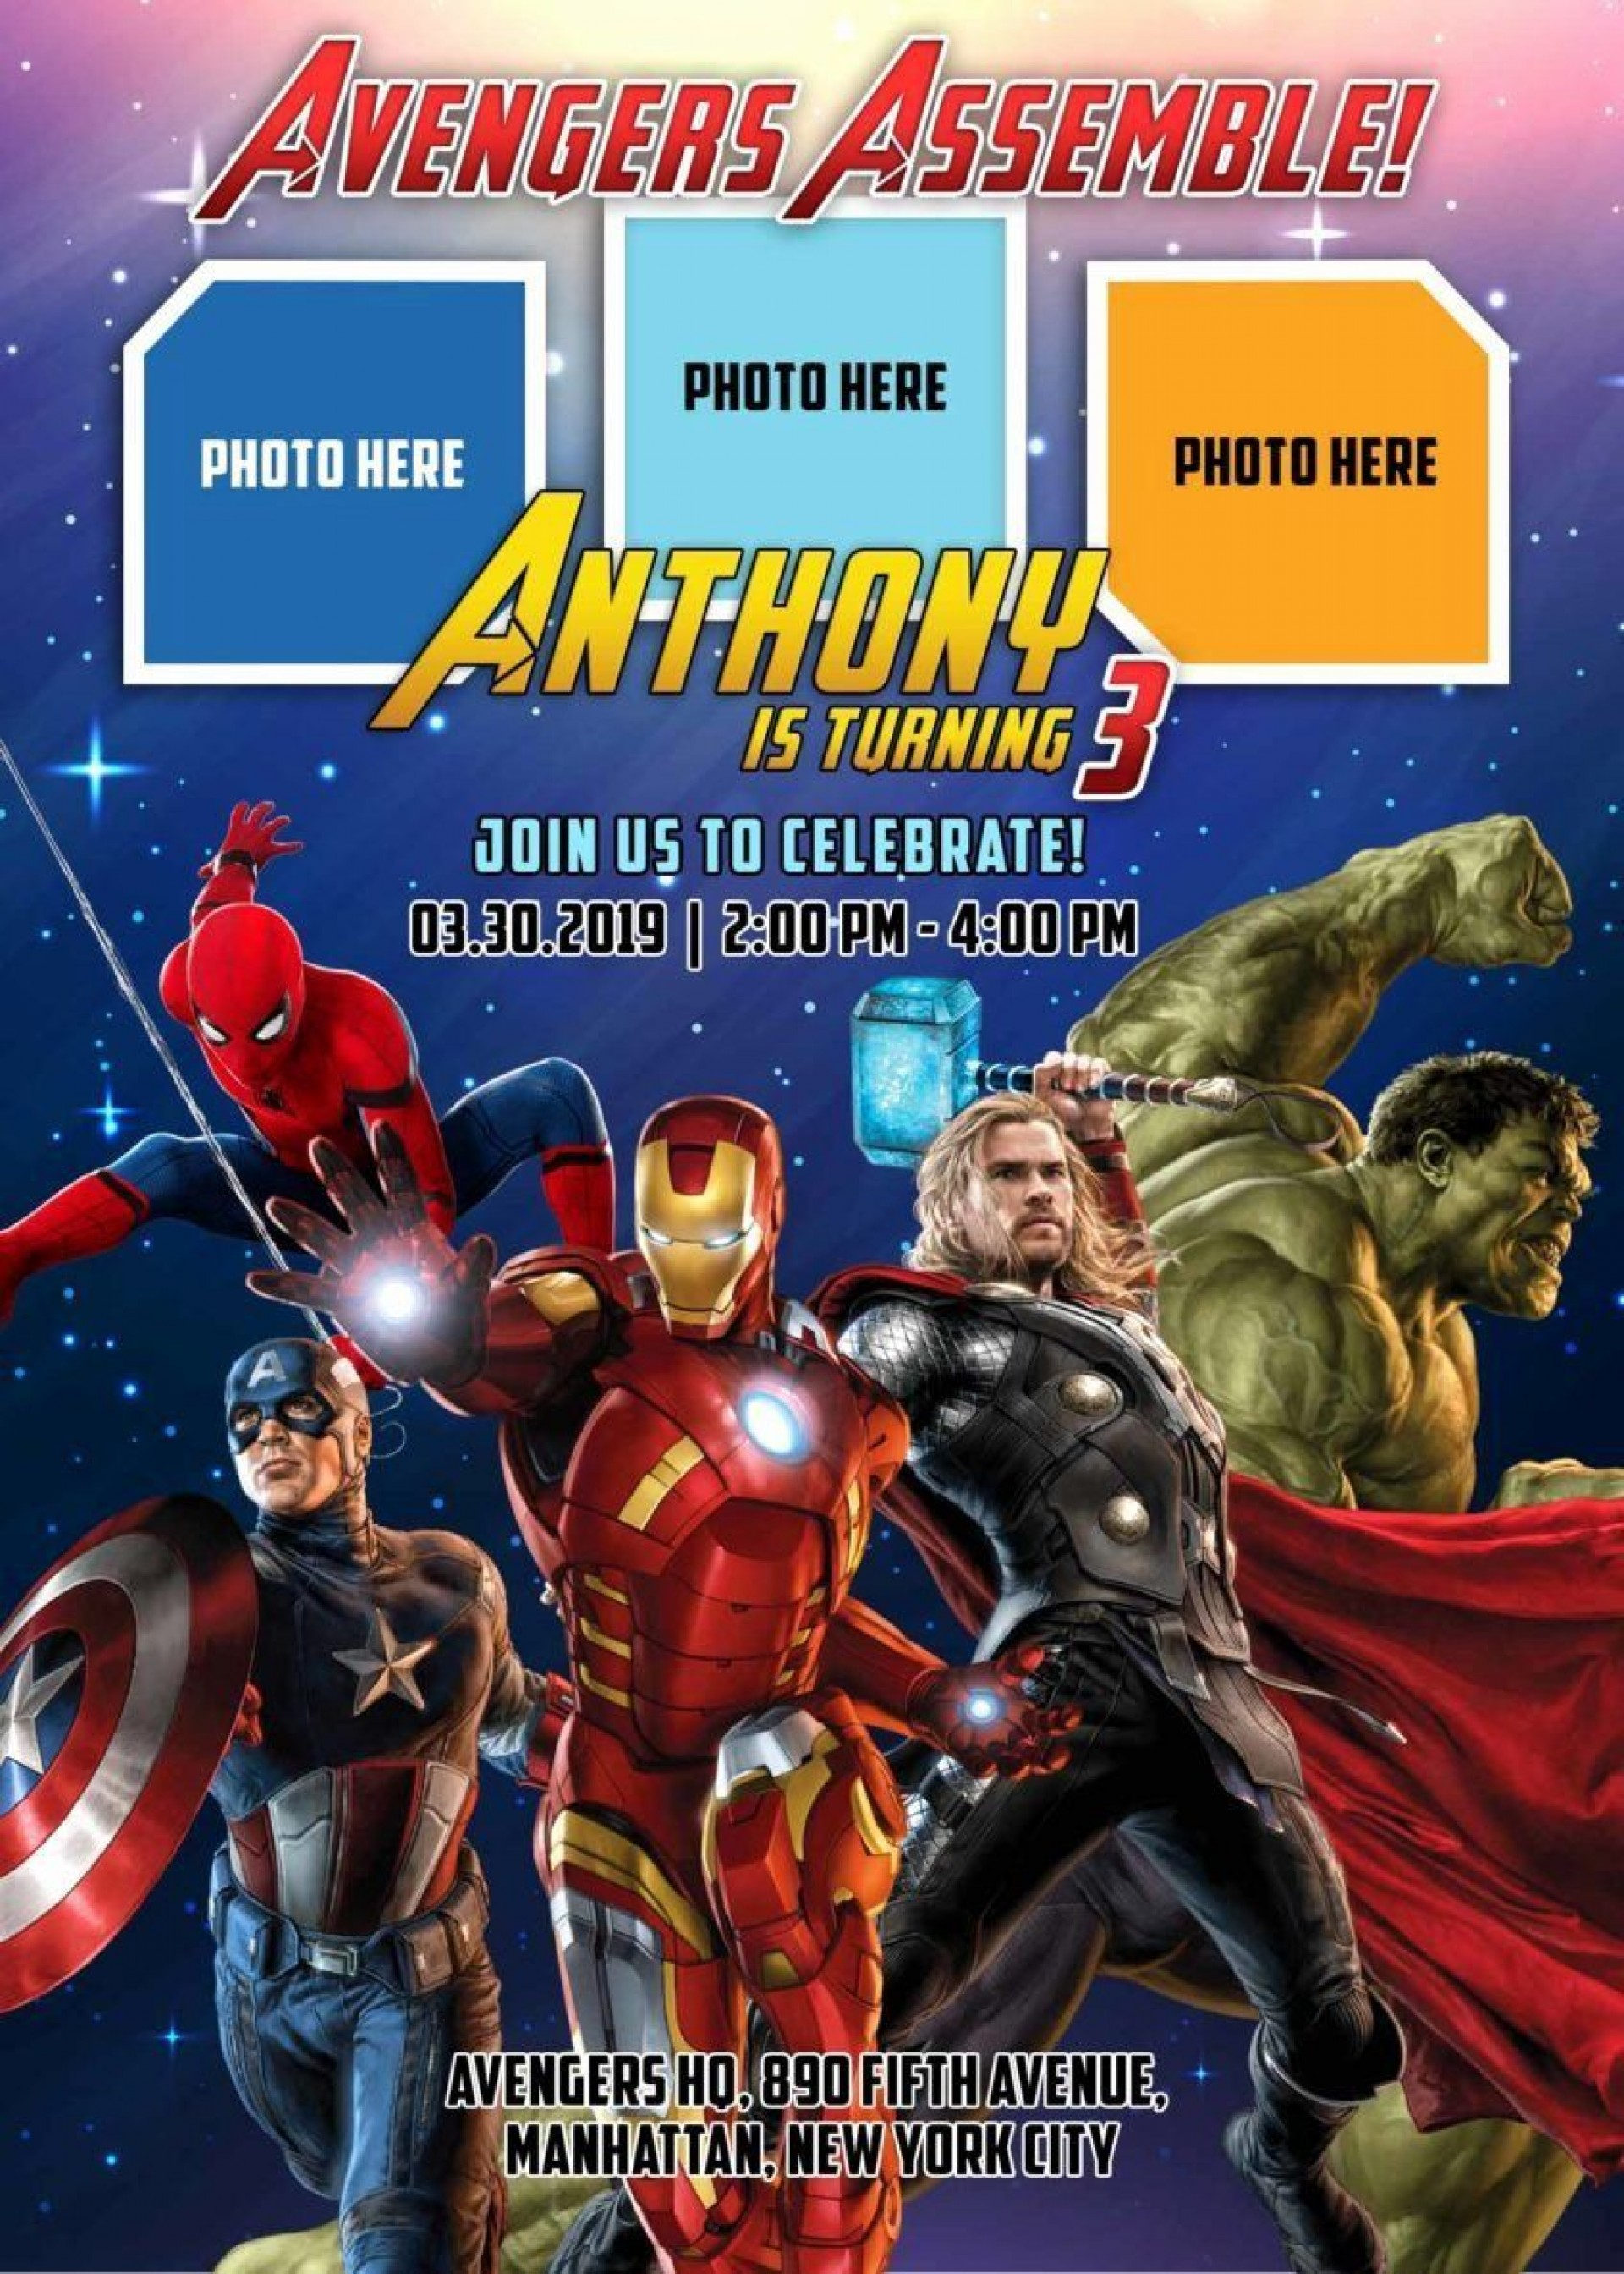 001 Archaicawful Avenger Birthday Party Invitation Template Free Example  Invite1920